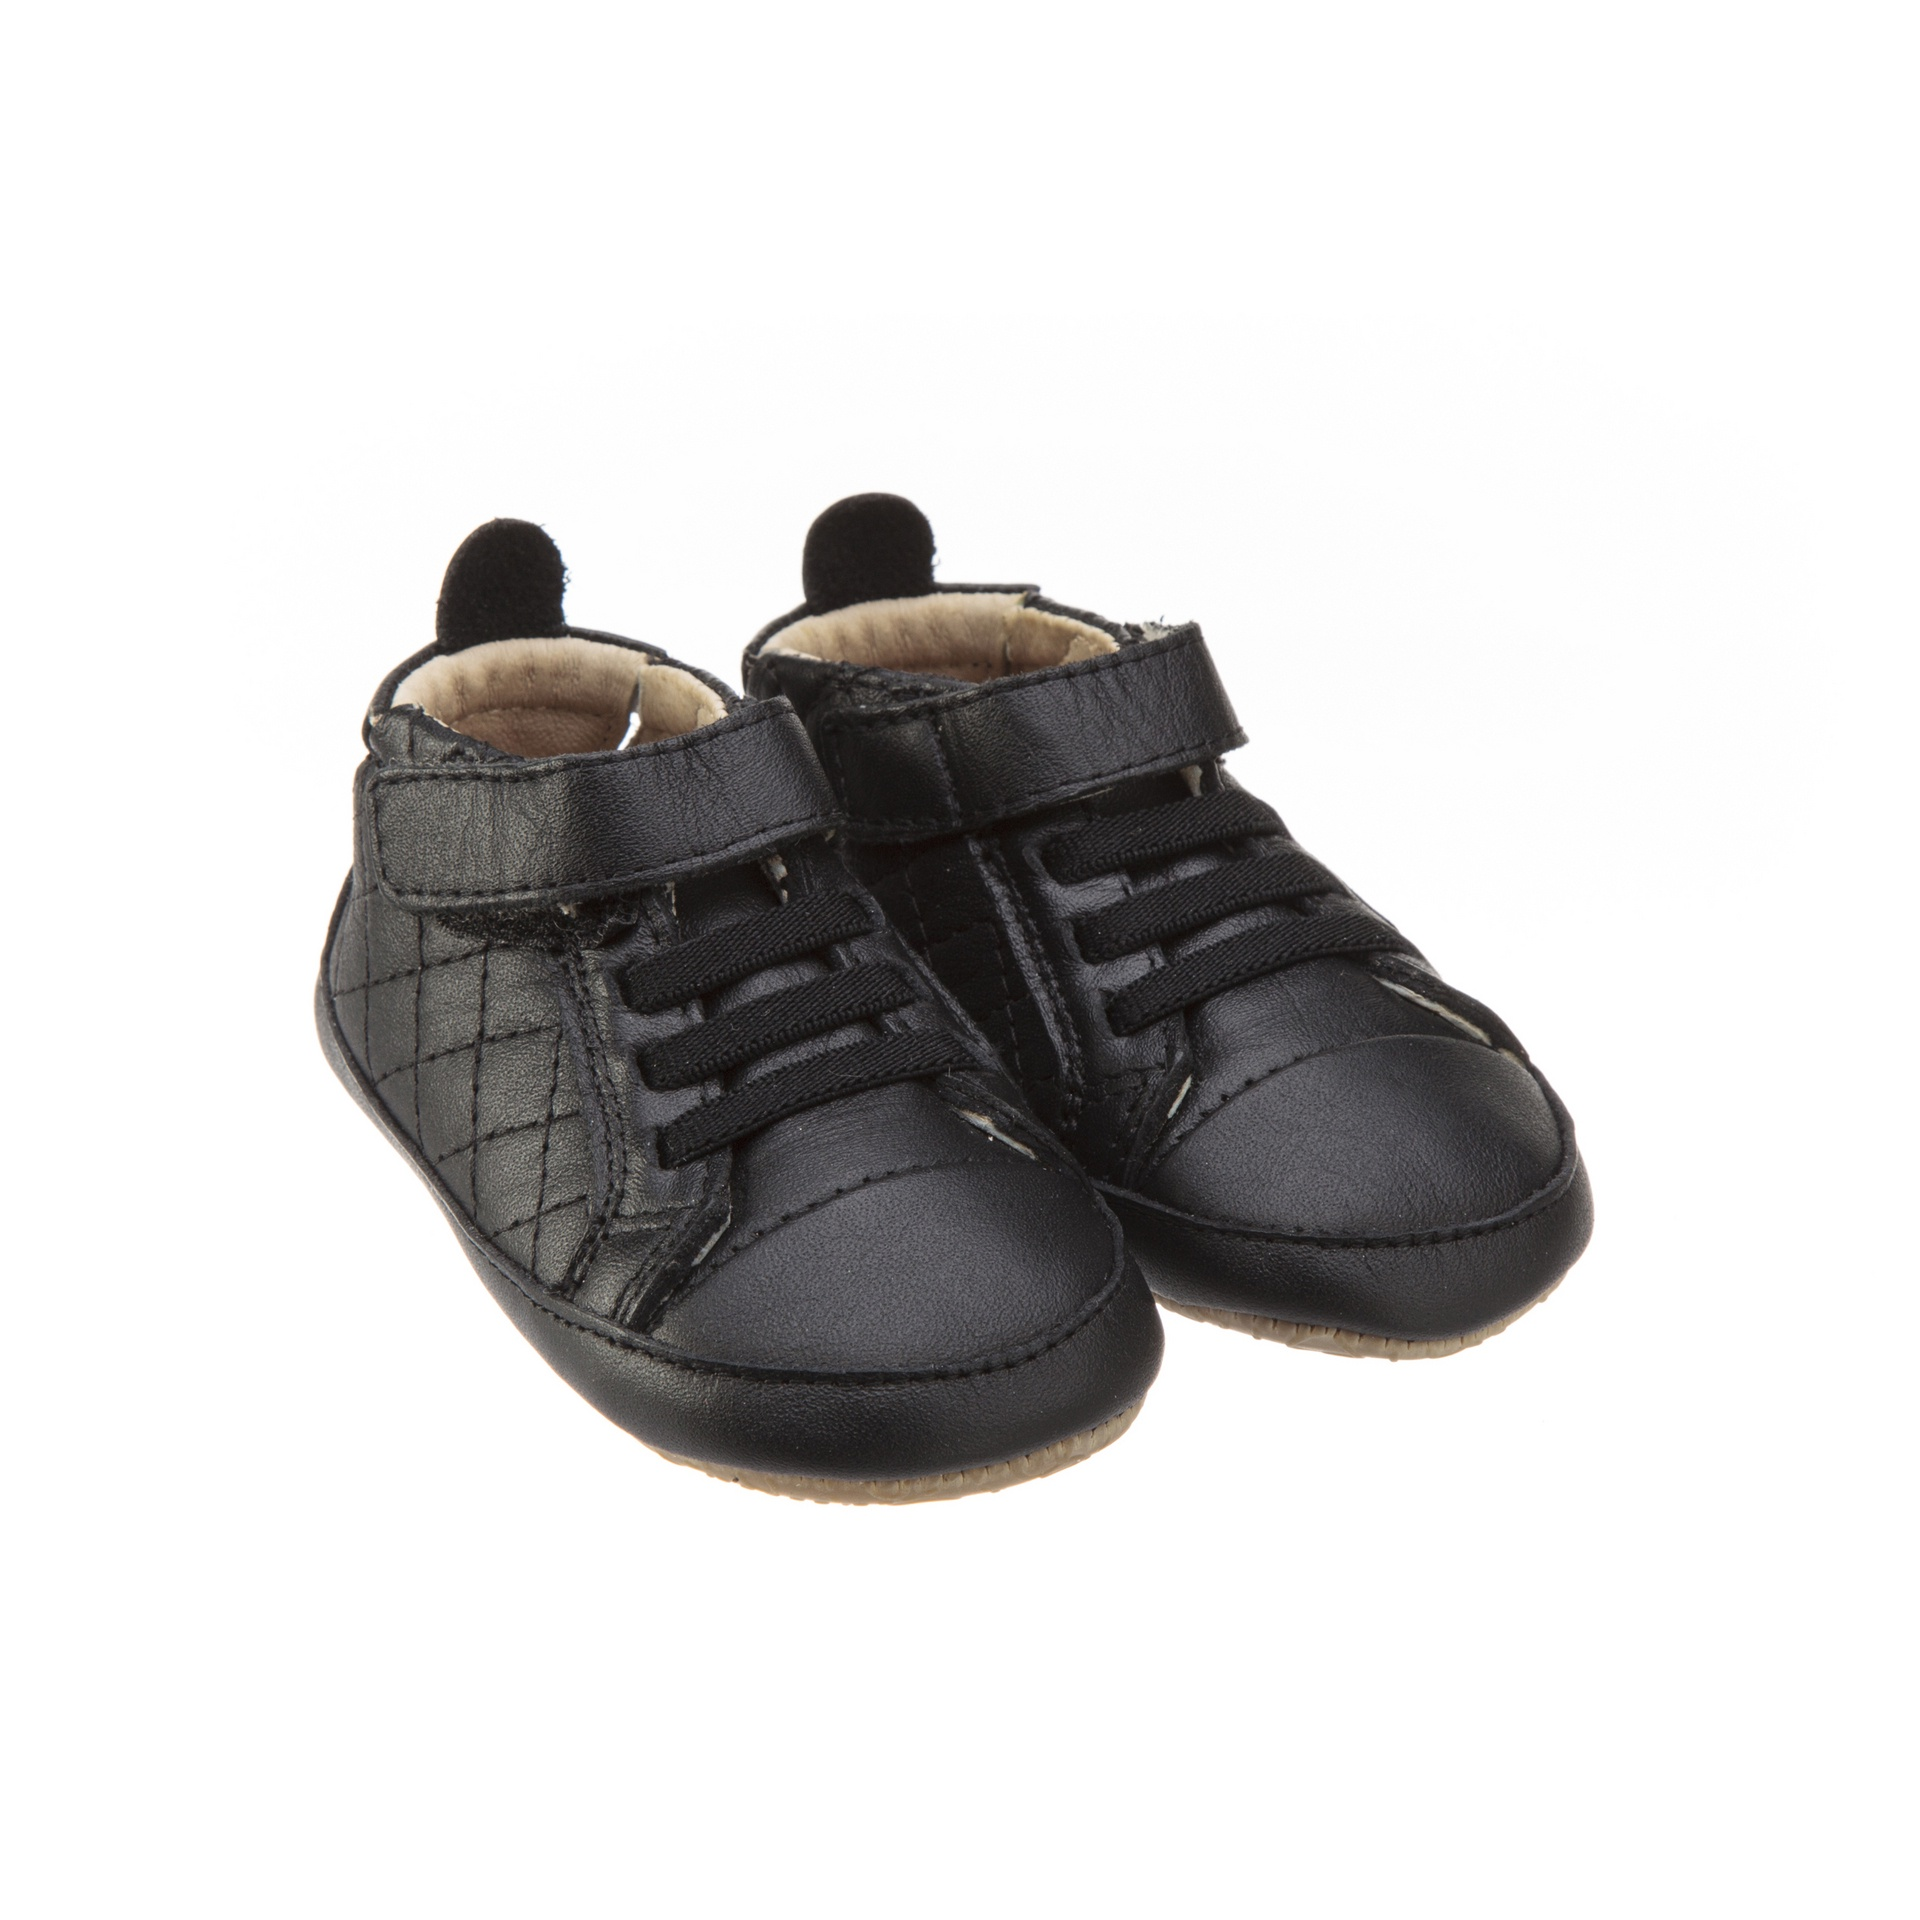 Old Soles Quilt Bambini Black